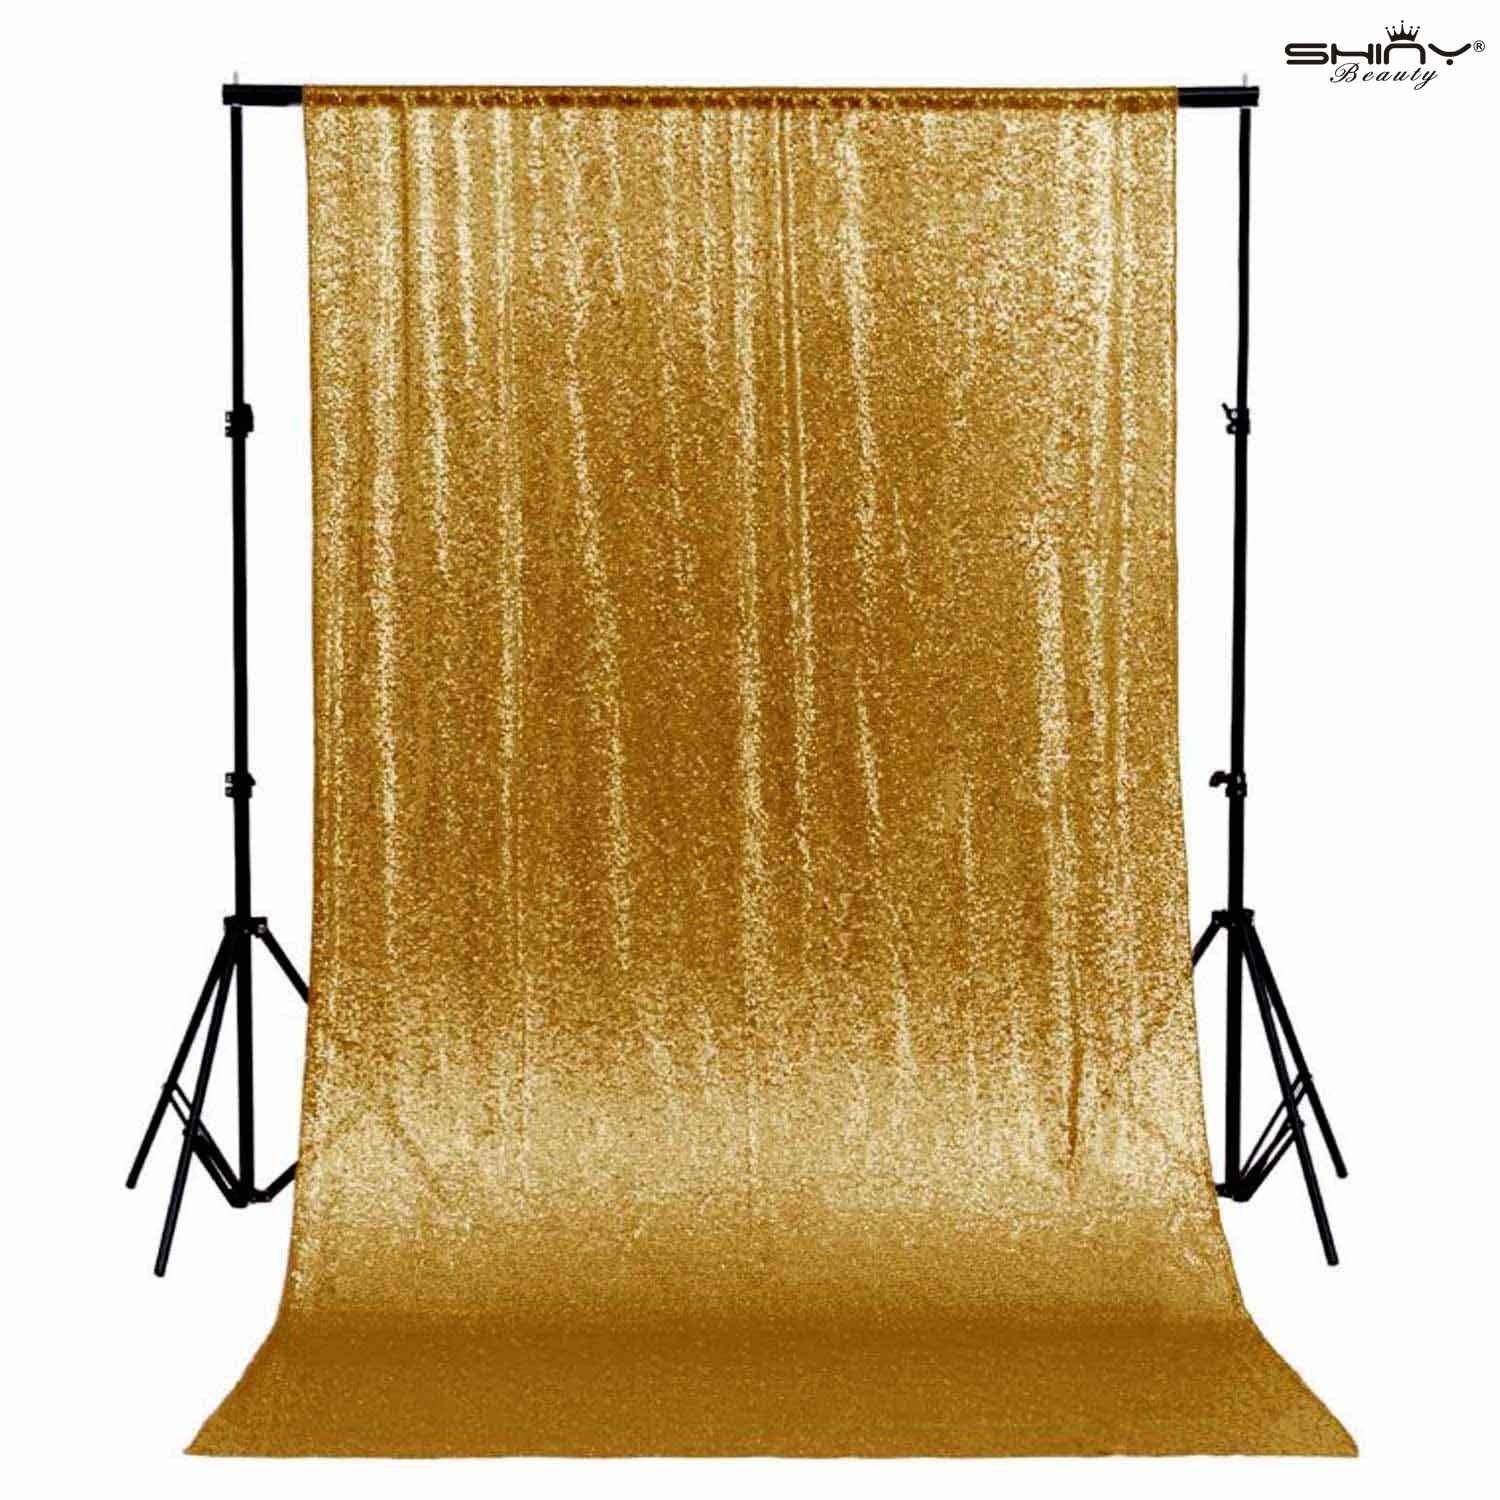 Gold Shimmer Sequin Fabric Photography Backdrop (10FTX10FT) by ShiDianYi